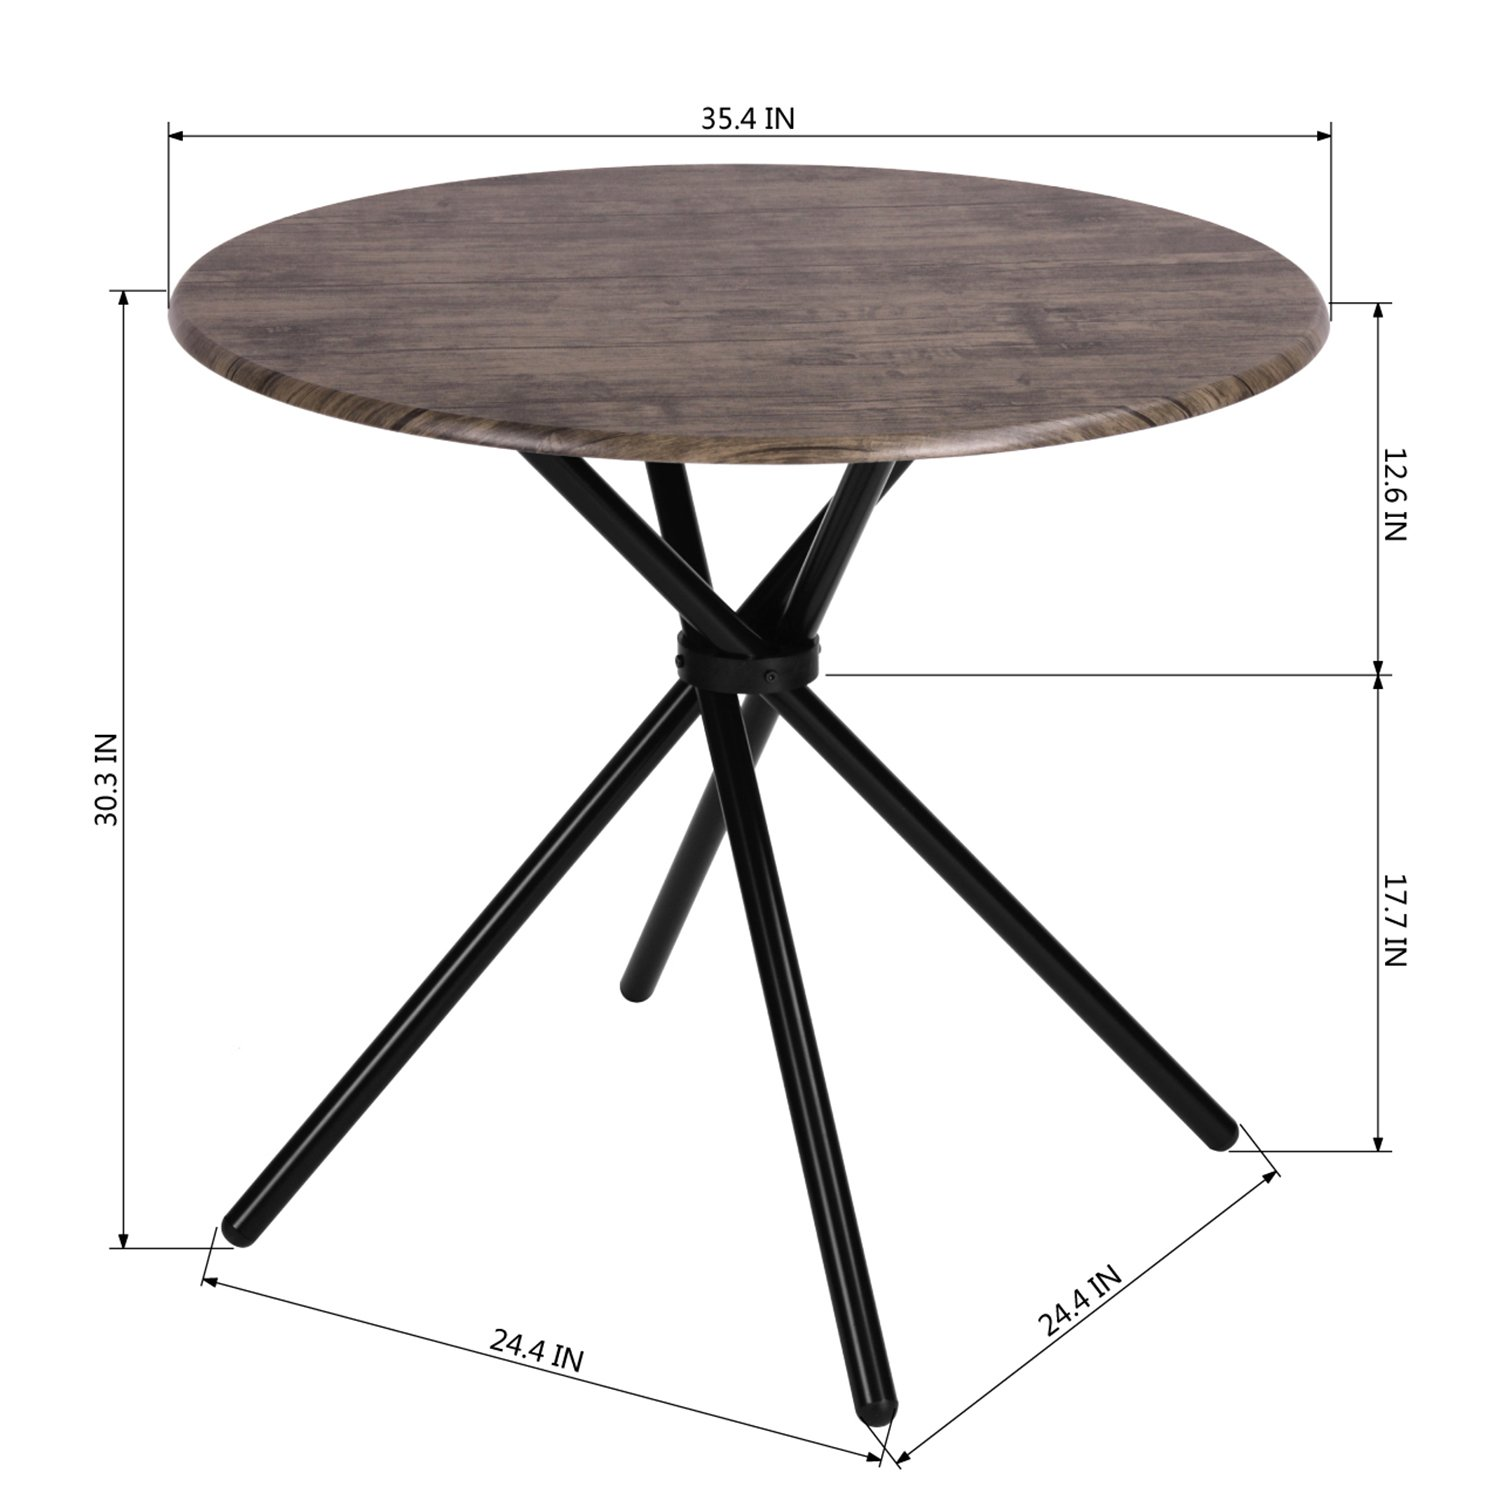 Kitchen Dining Table Industrial Brown Round Mid-Century Wood Coffee Table Office Home Easy-Assembly 35.4x35.4x29.5 Inches for for Living Drawing Receiving Room by Coavas (Image #4)